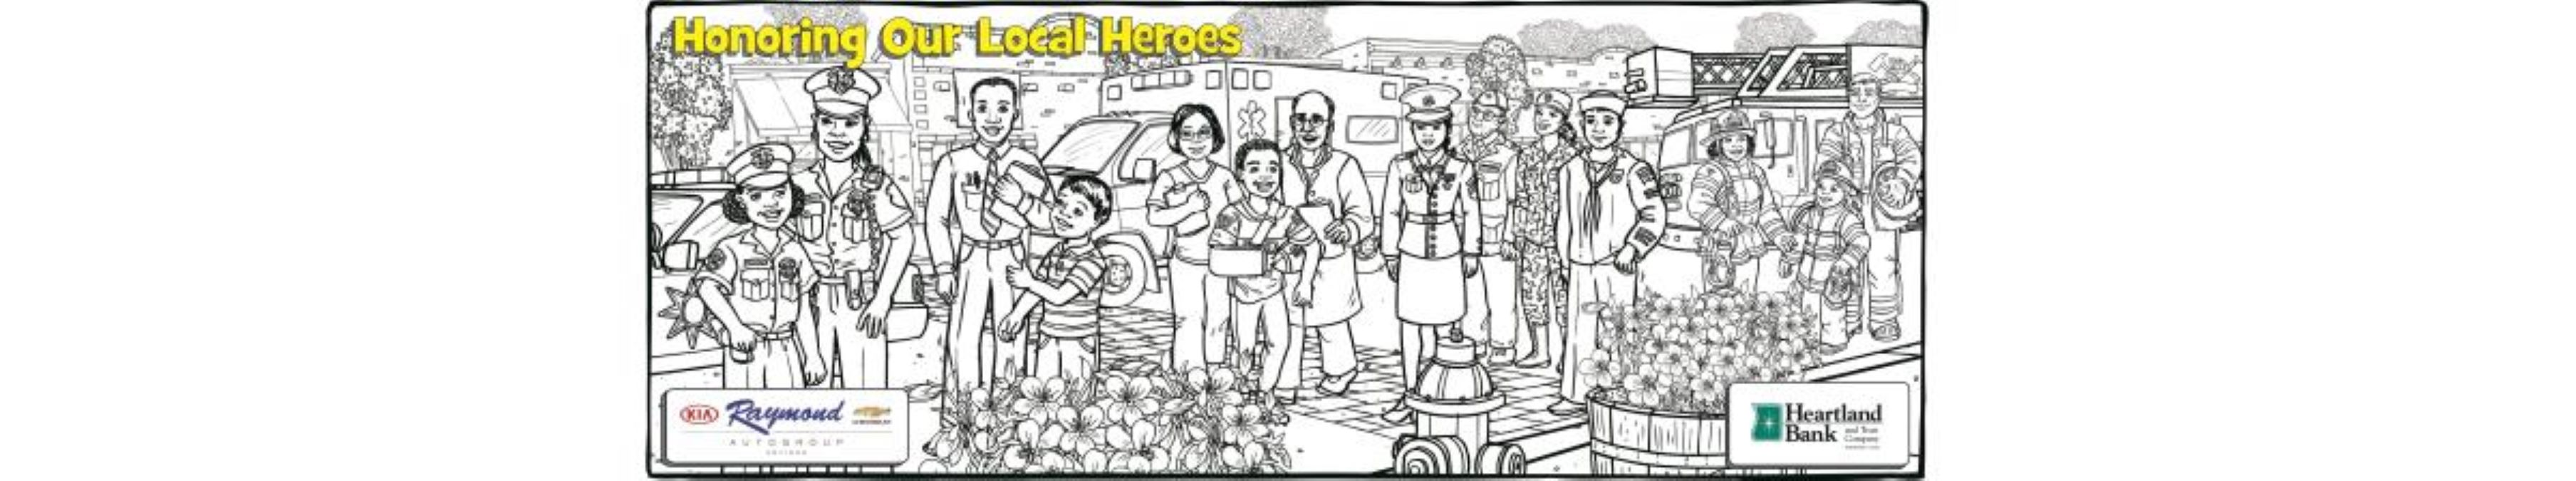 Antioch's Honoring Our Heroes Community Wall Mural Project